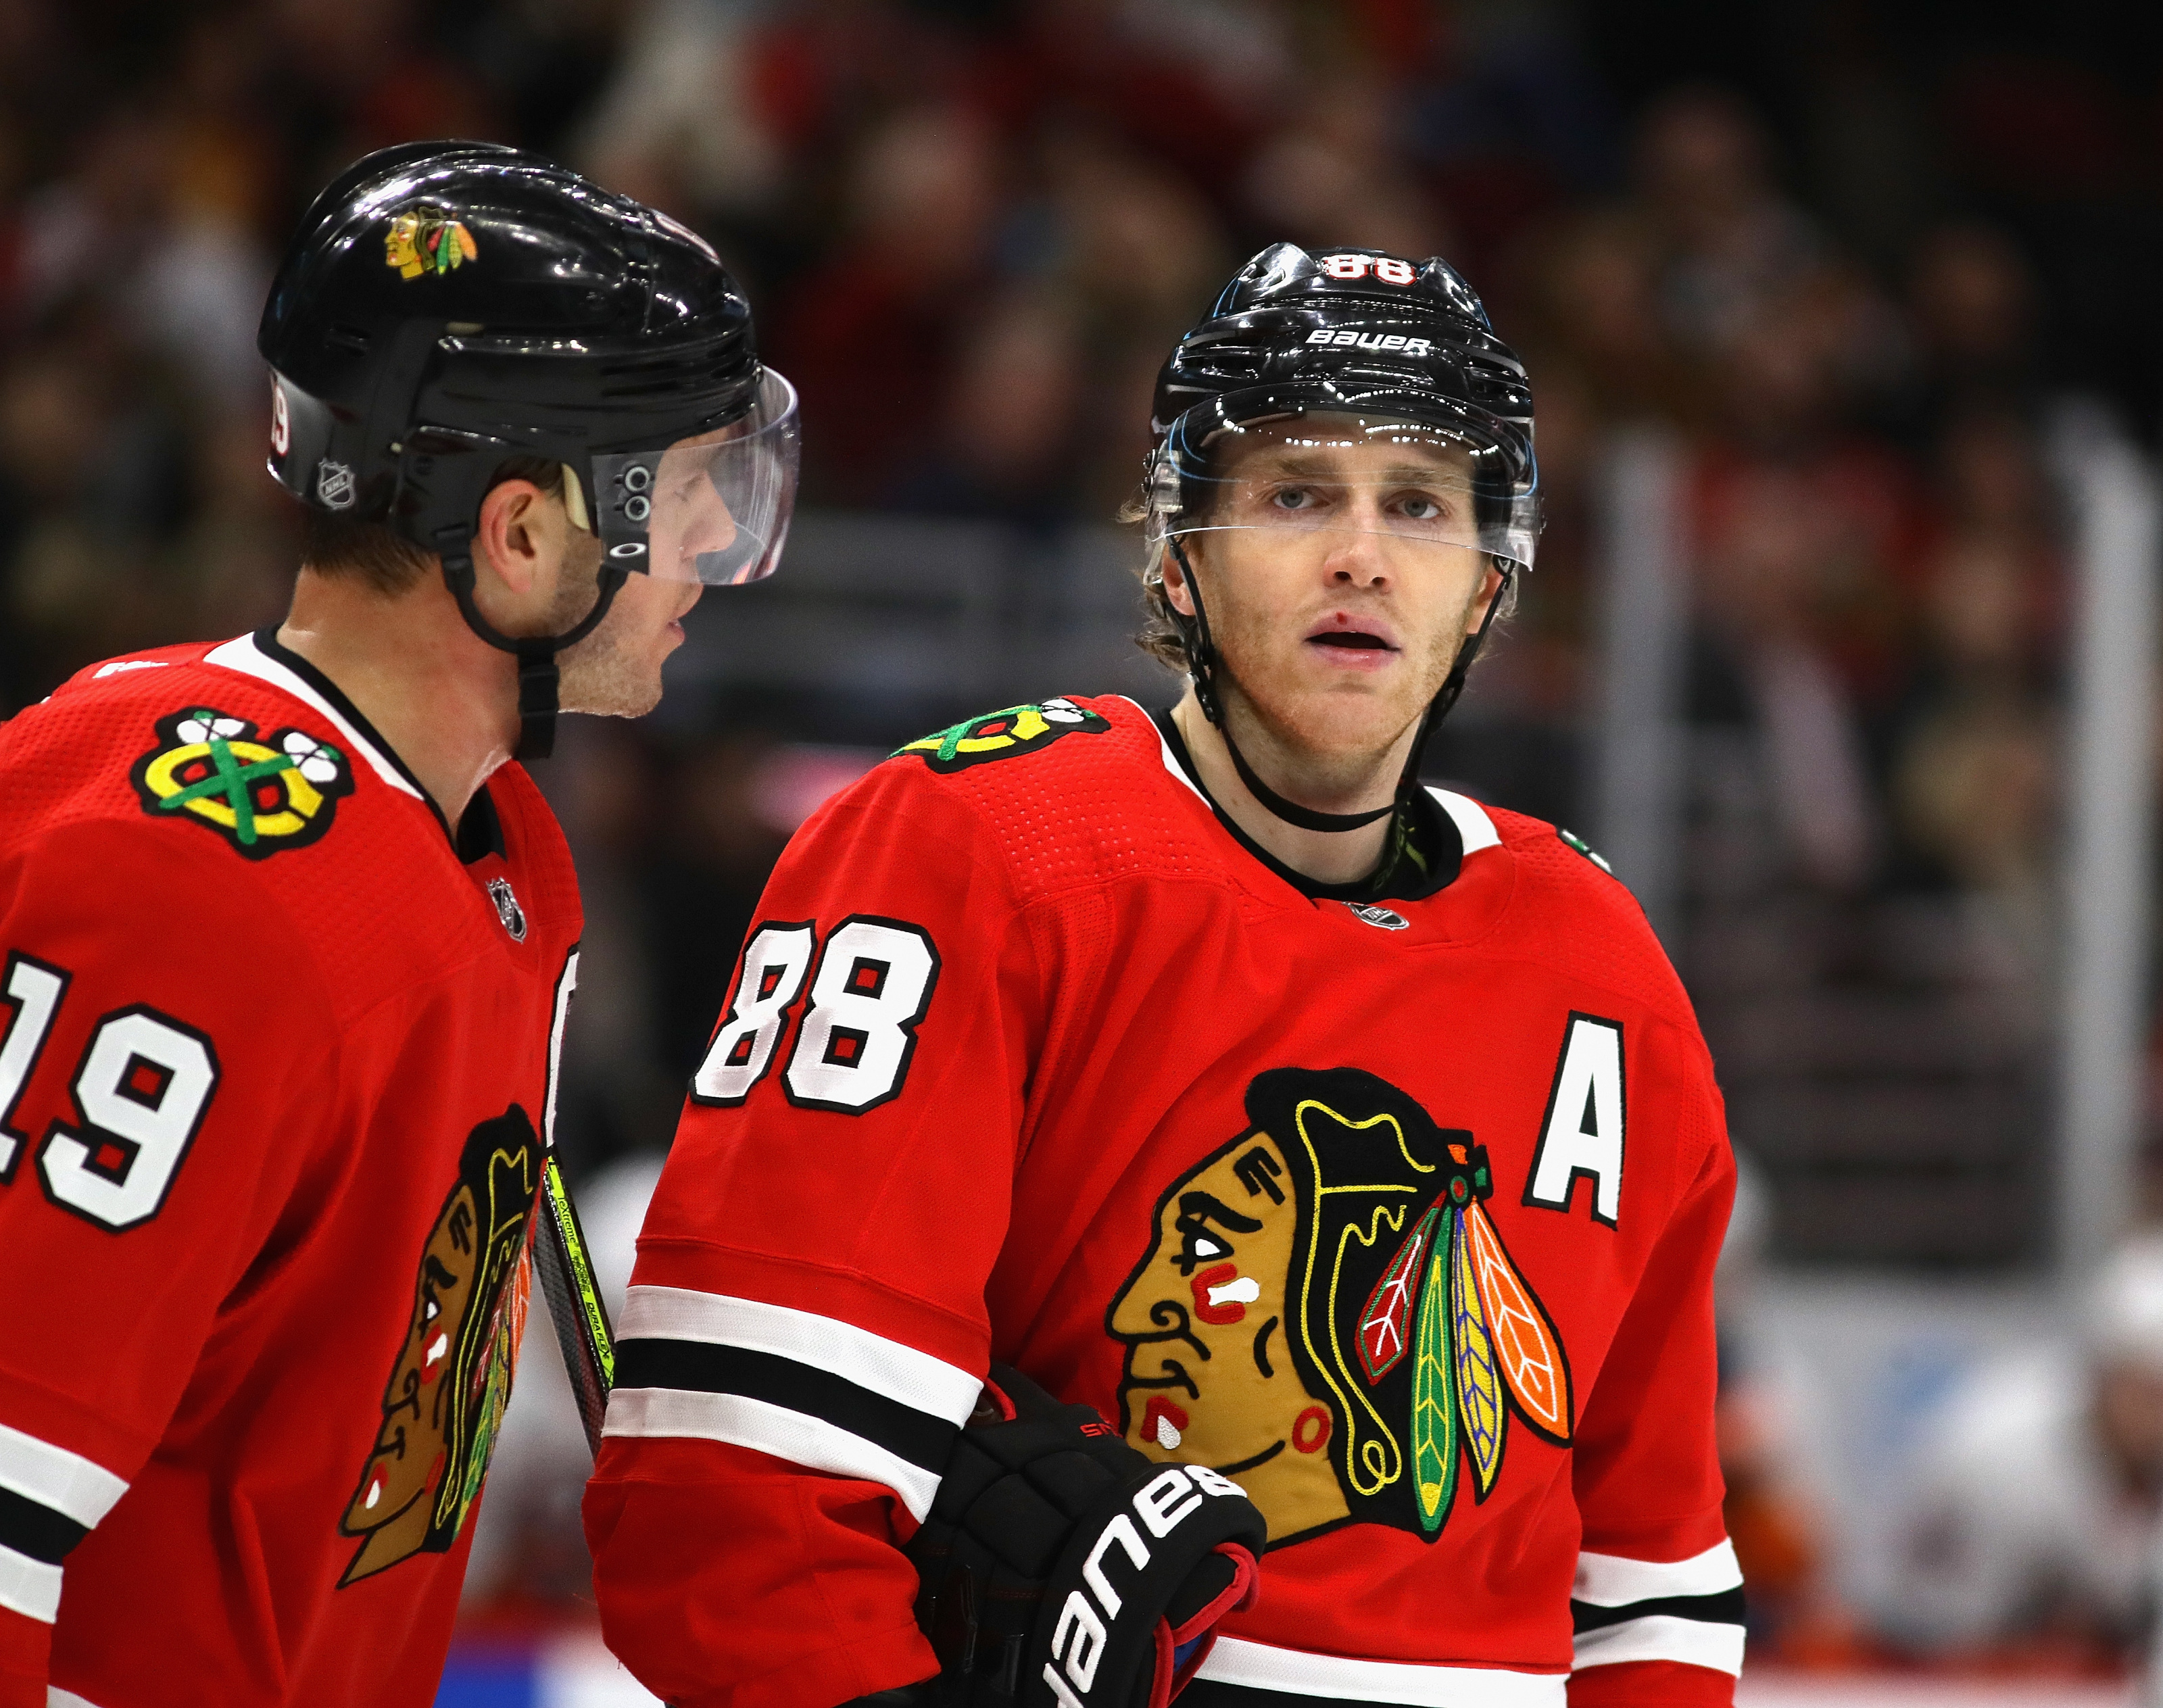 Chicago Blackhawks: Toews and Kane are not to blame